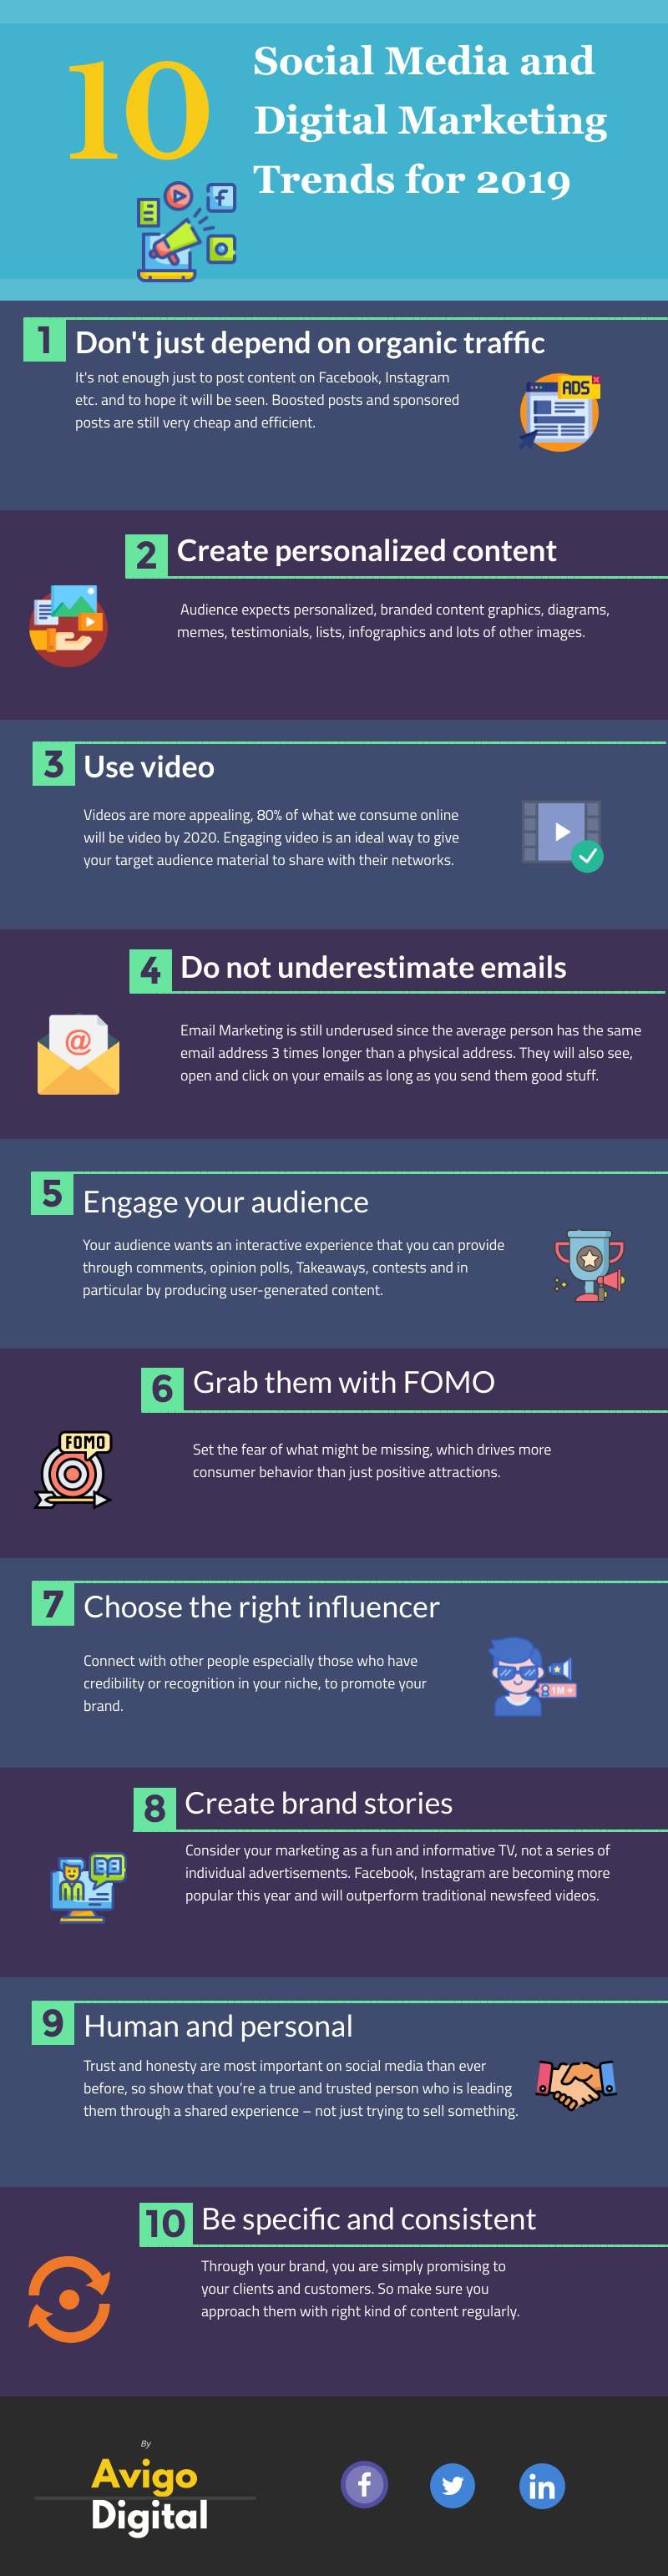 social media and digital marketing trends for 2019 Info graphic